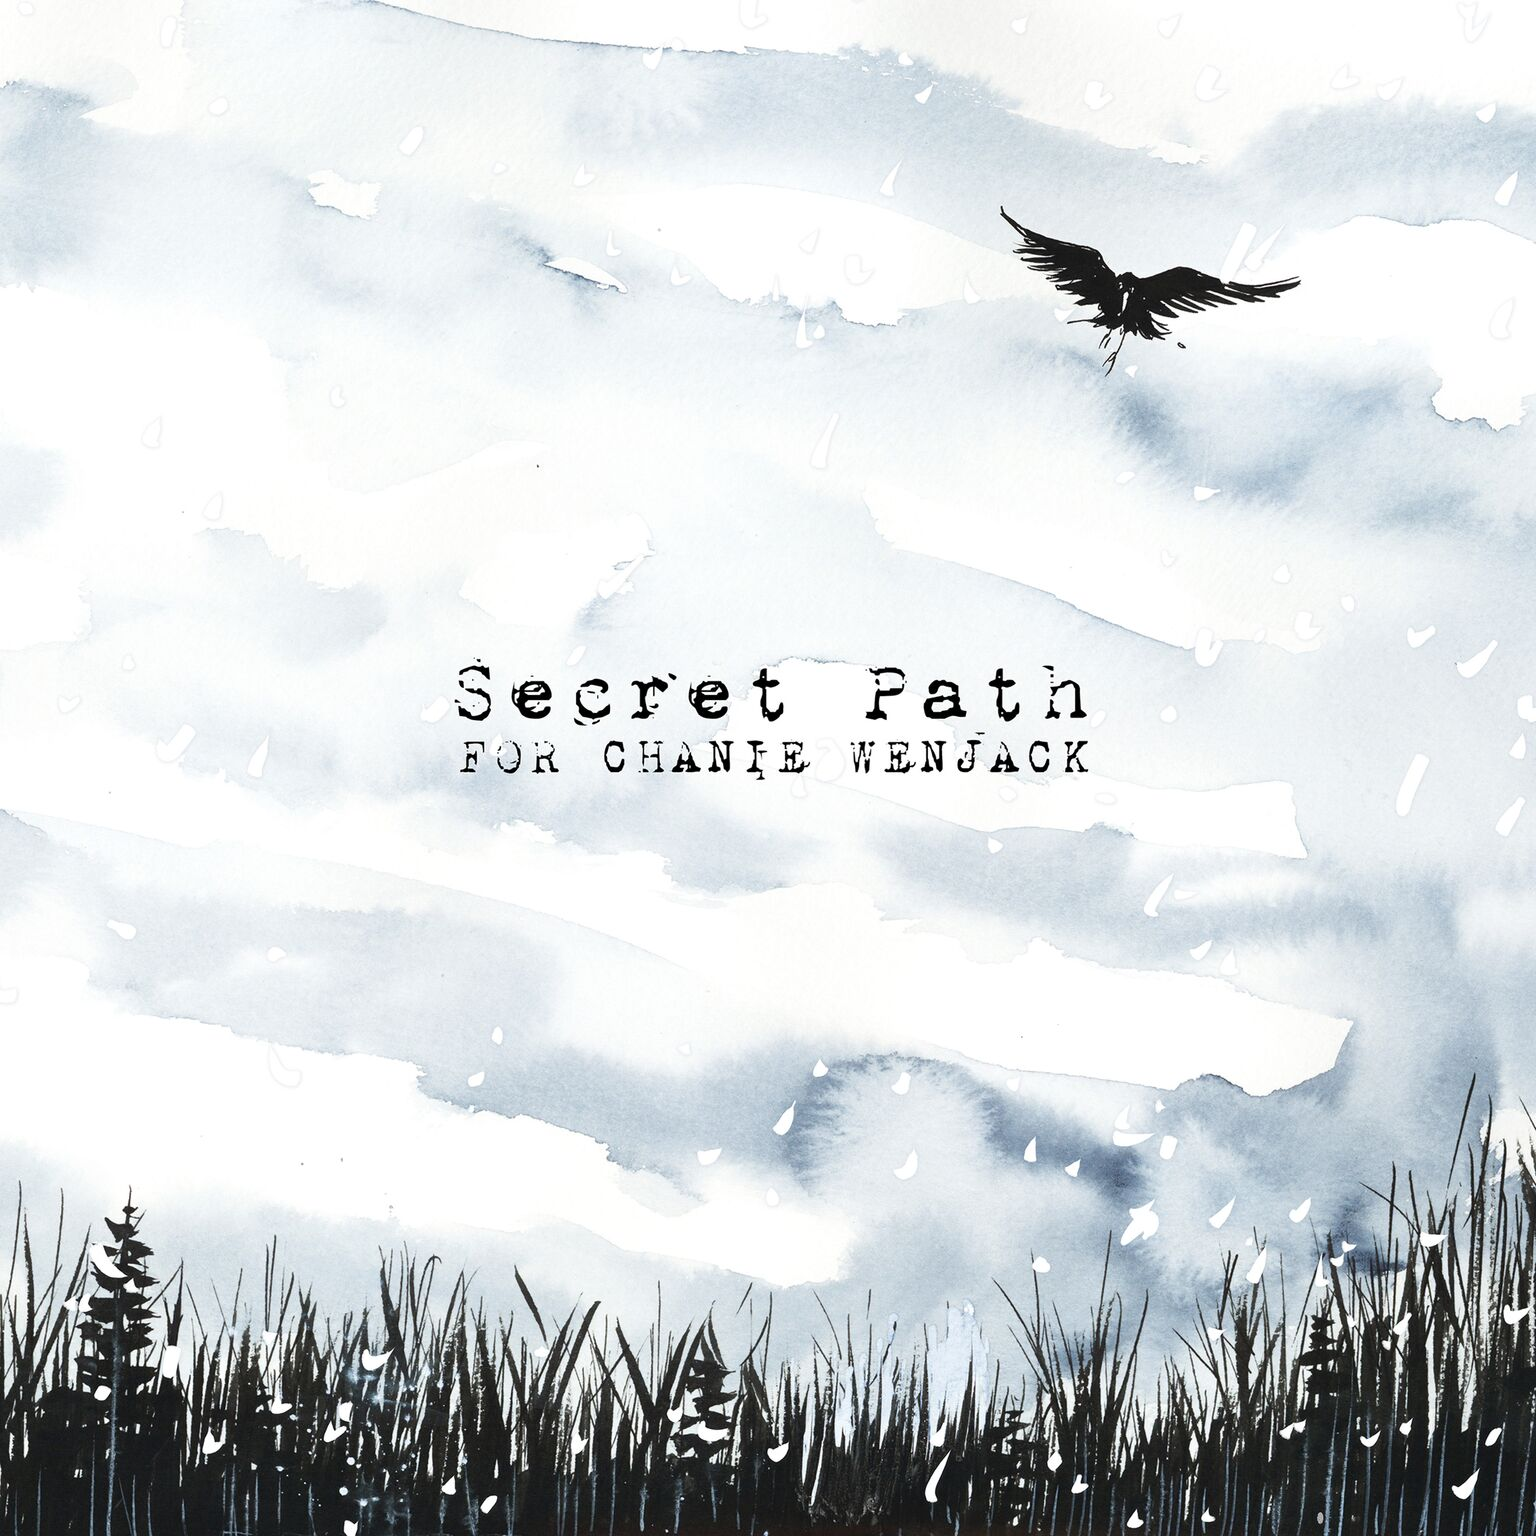 Secret Path Gord Downie And Jeff Lemire